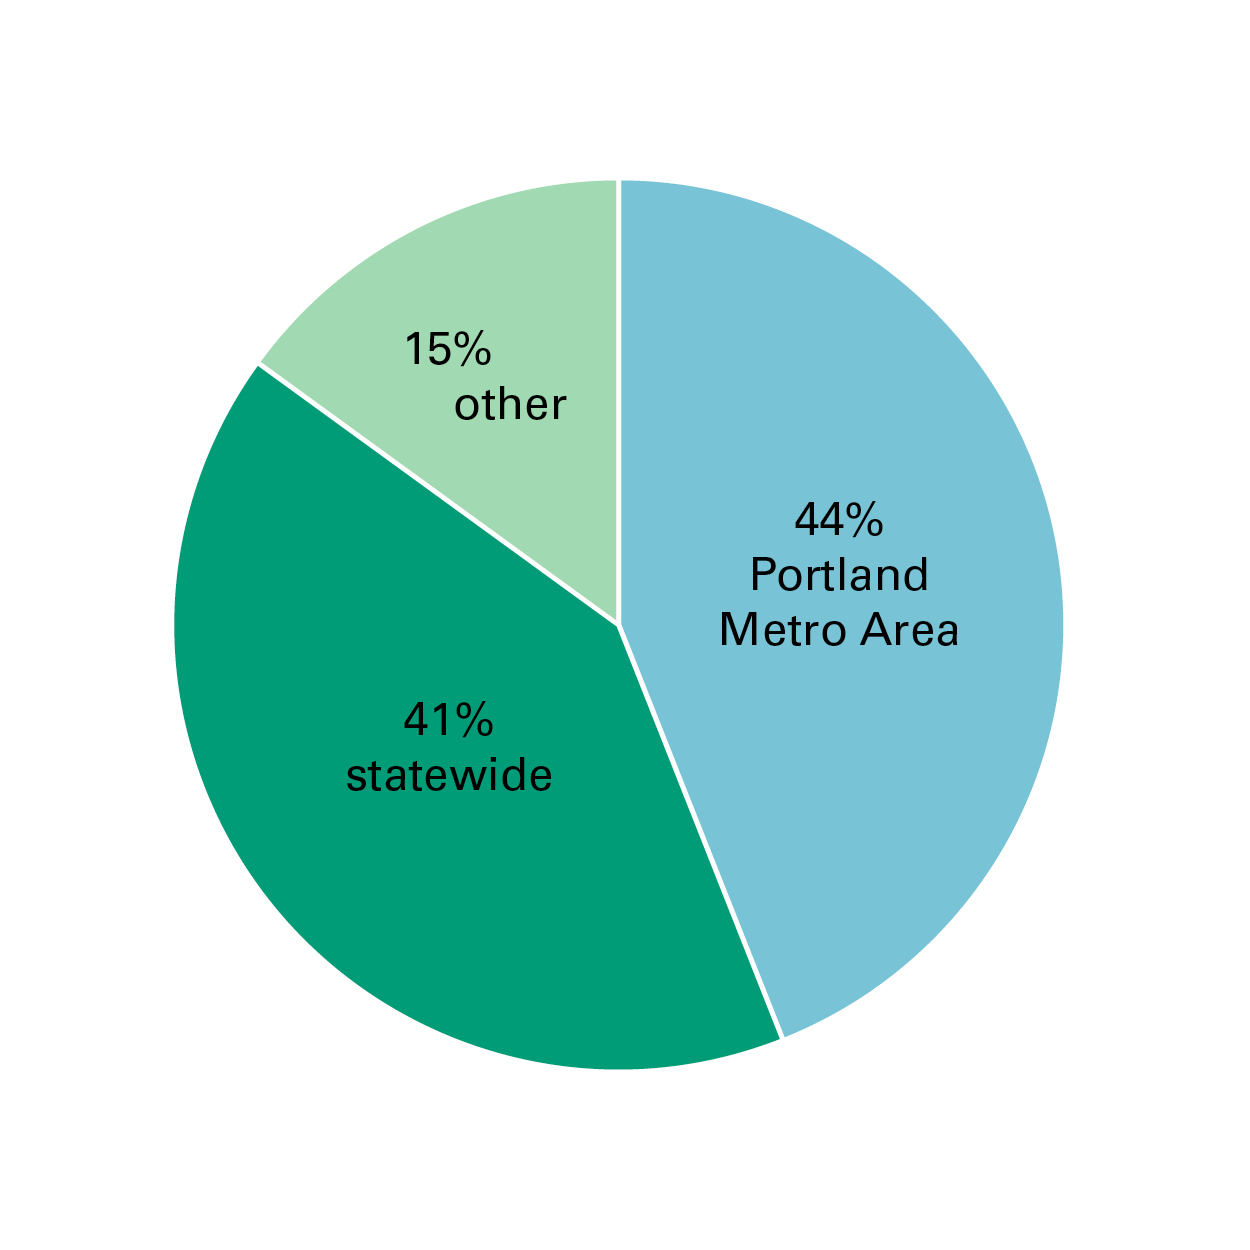 Pie chart: 44% of system changes affected the Portland Metro Area, 41% affected the whole state, 15% affected other locales.